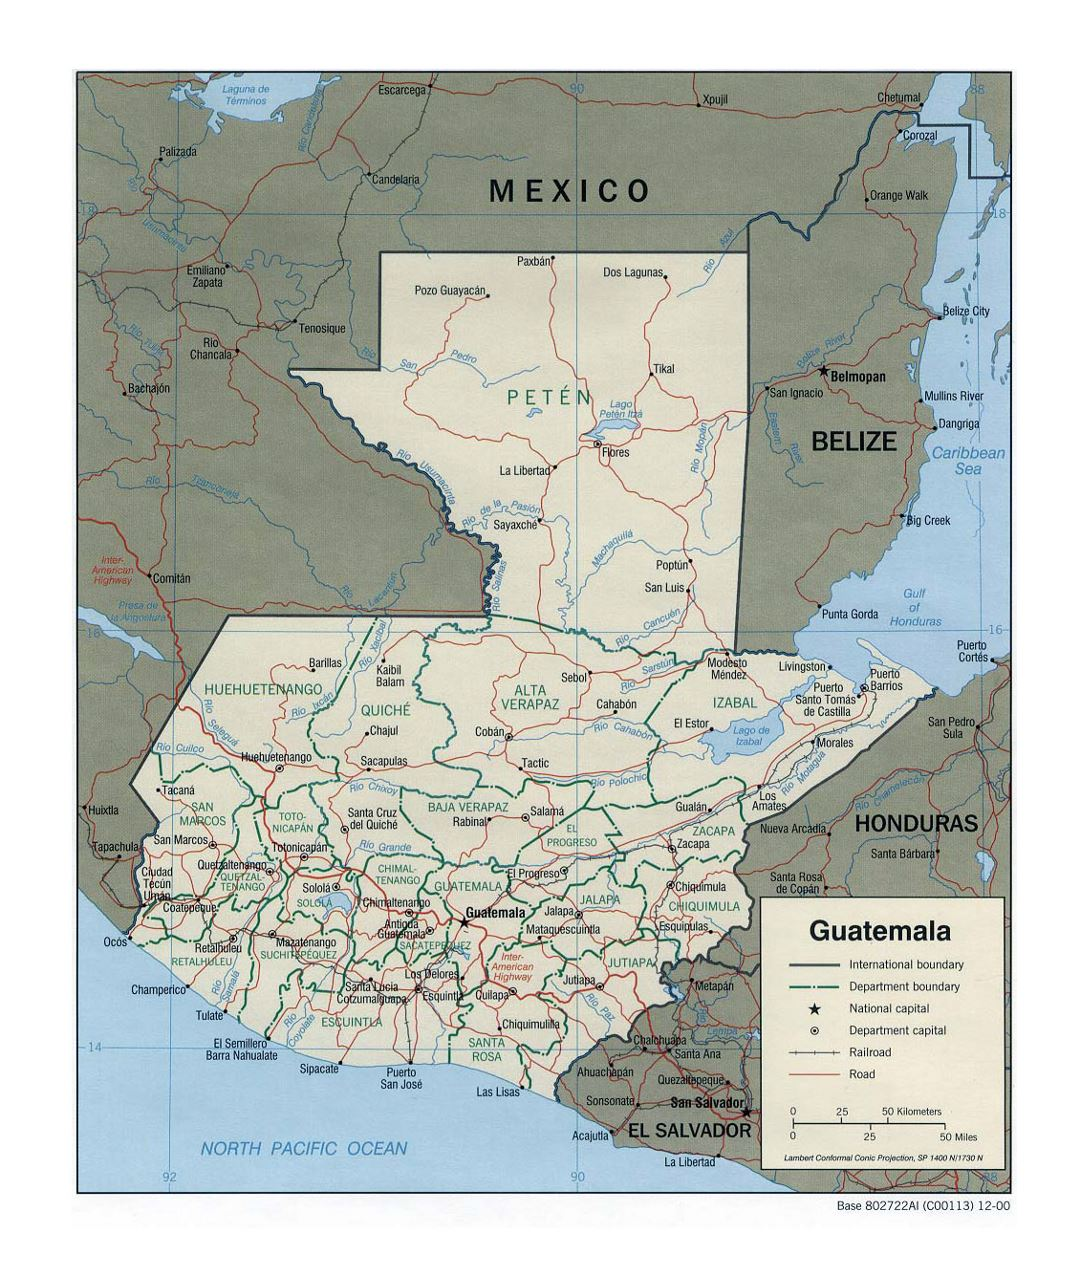 Detailed political and administrative map of Guatemala with roads, railroads and major cities - 2000